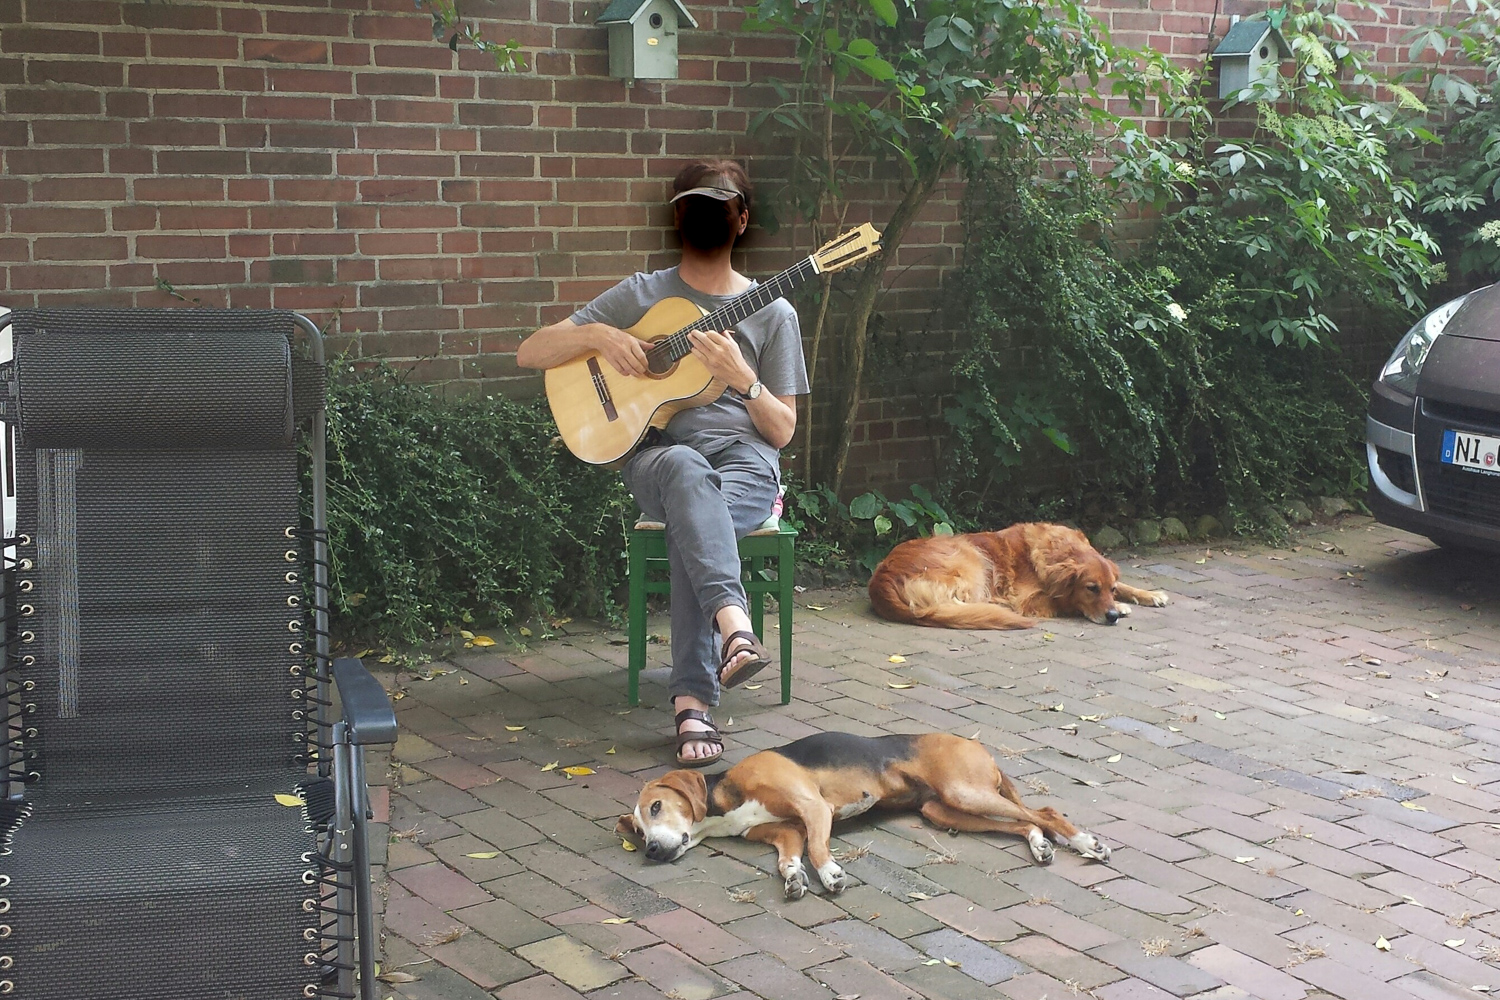 listen to music, sure again different dogs living there